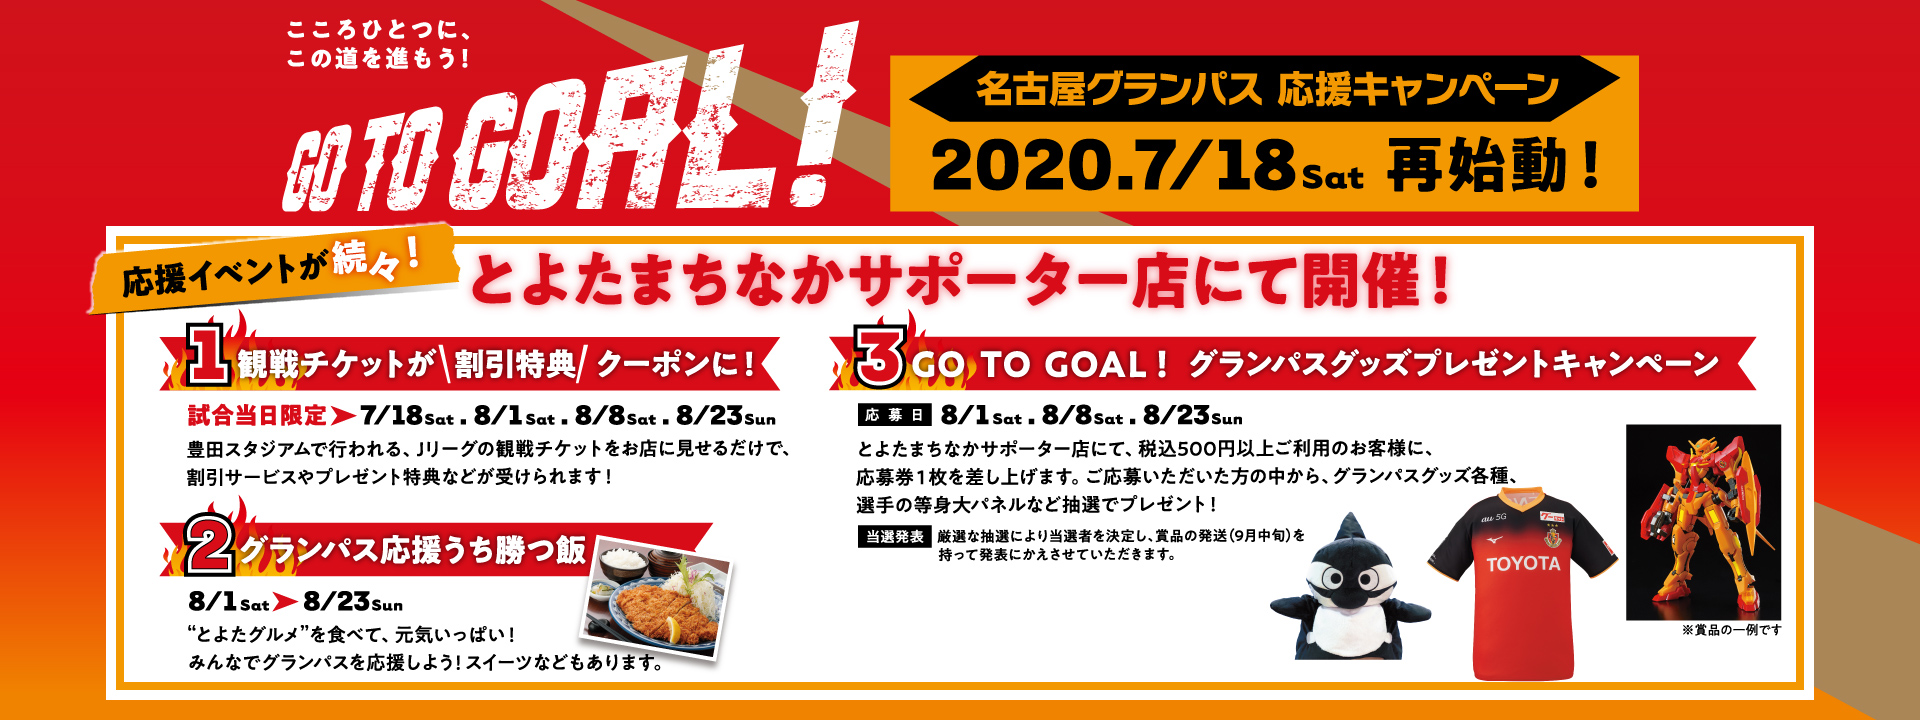 GO TO GOAL! 応援キャペーン